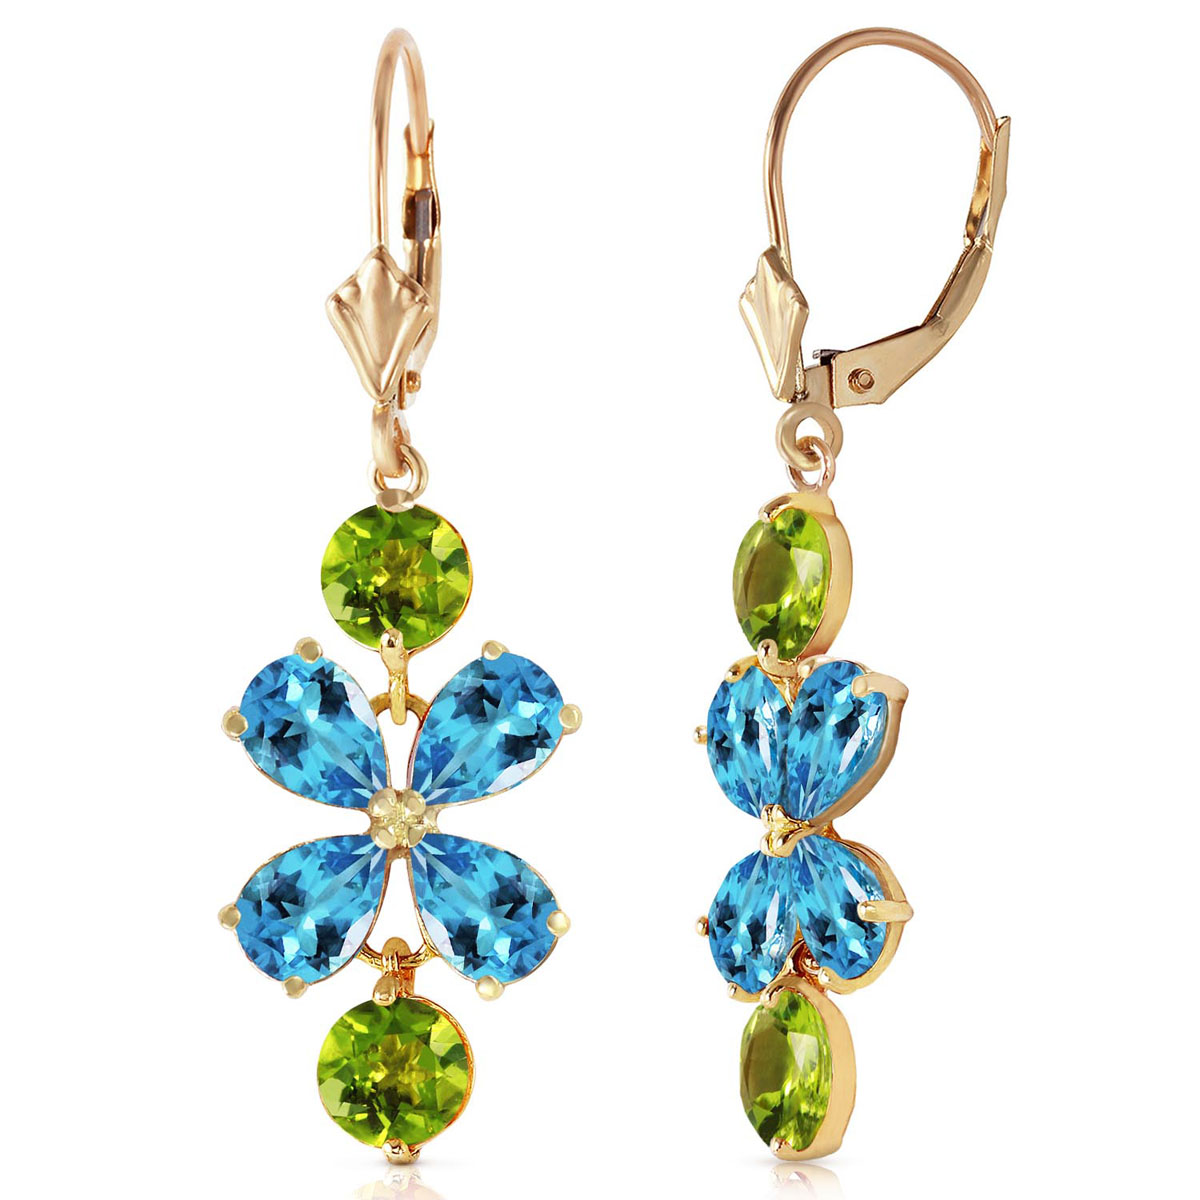 Blue Topaz & Peridot Blossom Drop Earrings in 9ct Gold